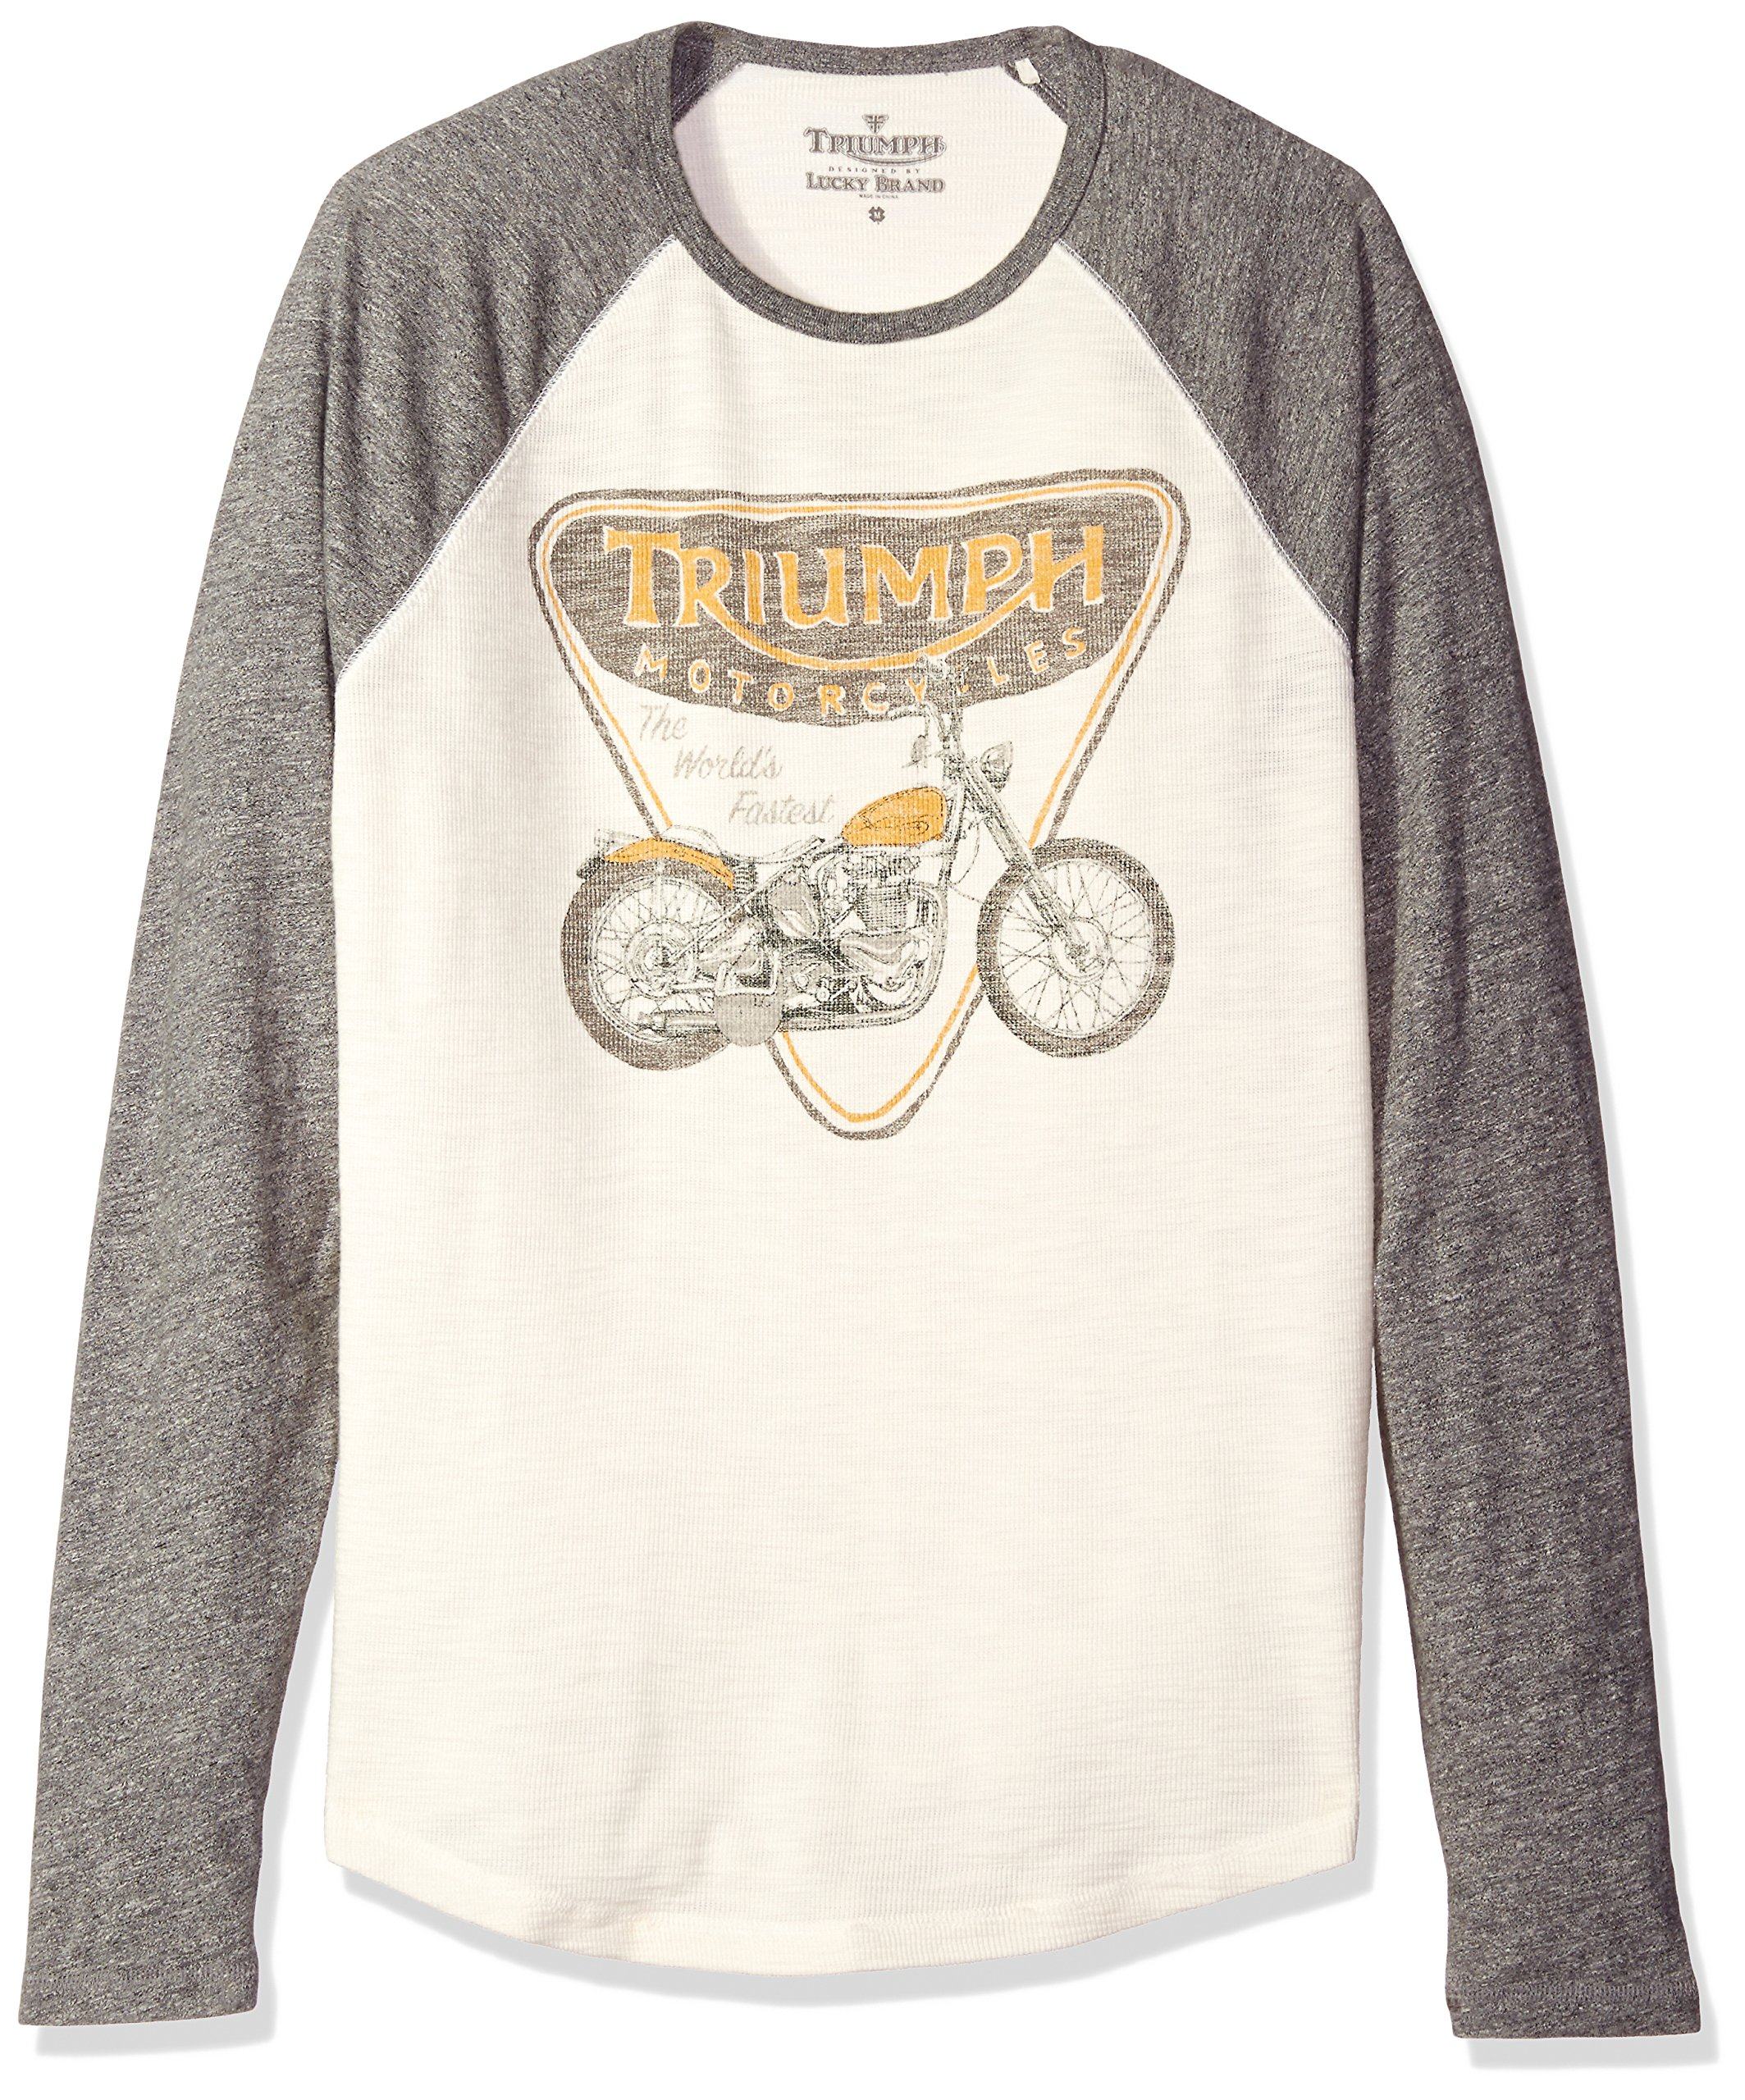 Lucky Brand Men's Triumph Badge and Bike Graphic Tee, Multi, X-Large